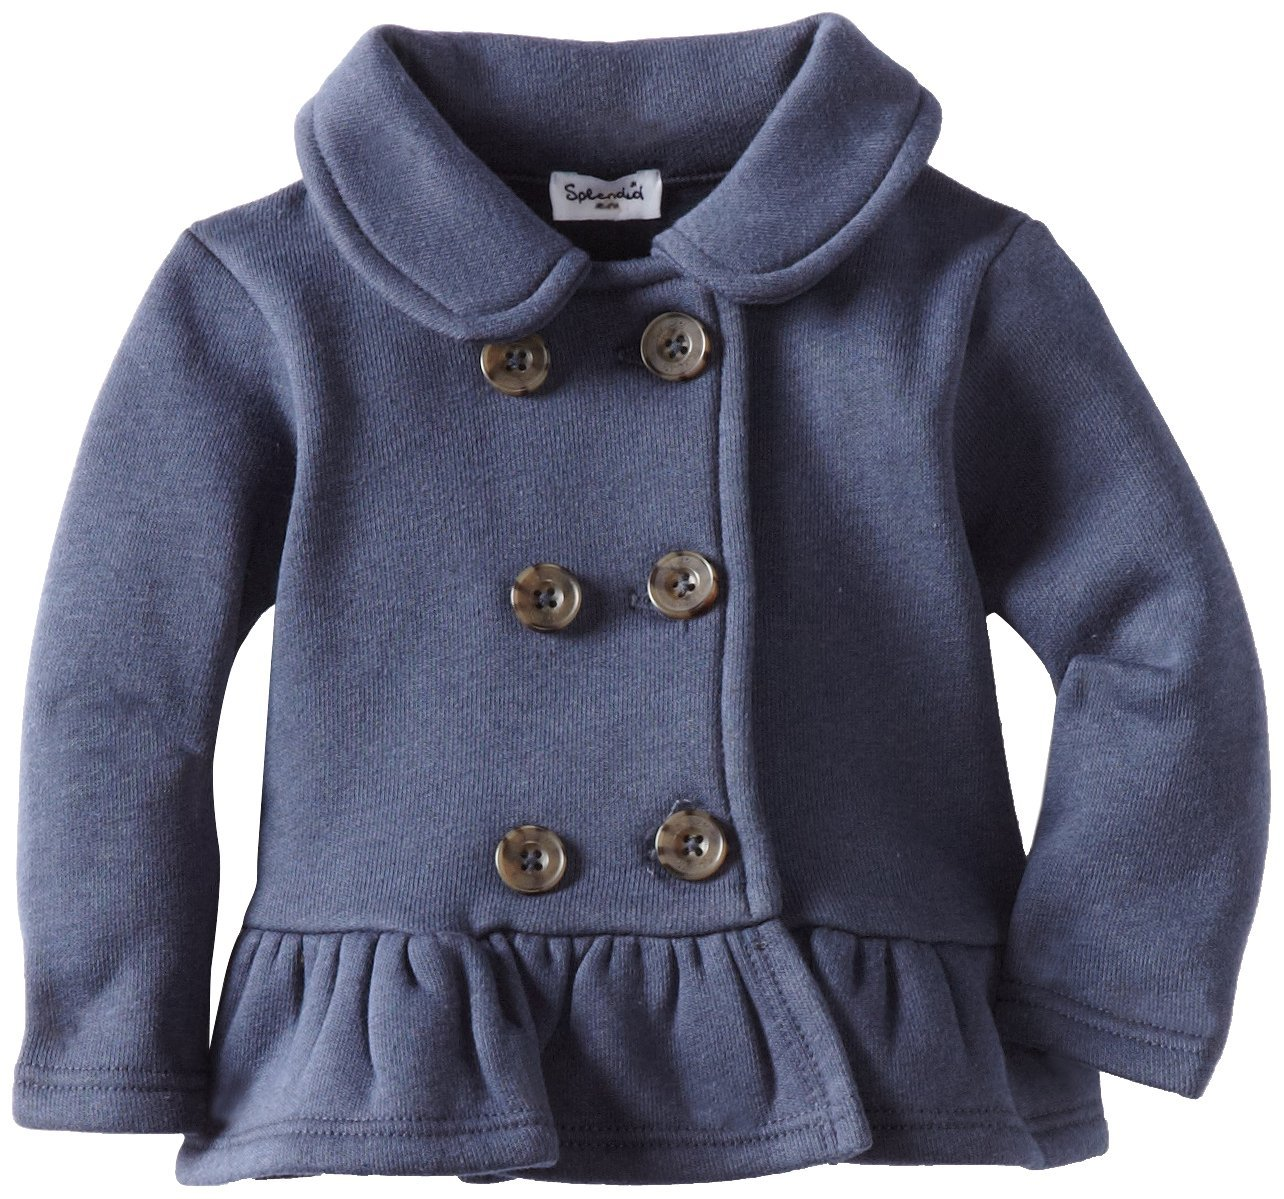 boys' pea coats - up to 70% off. Well, darn. This item just sold out. Select notify me & we'll tell you when it's back in stock.